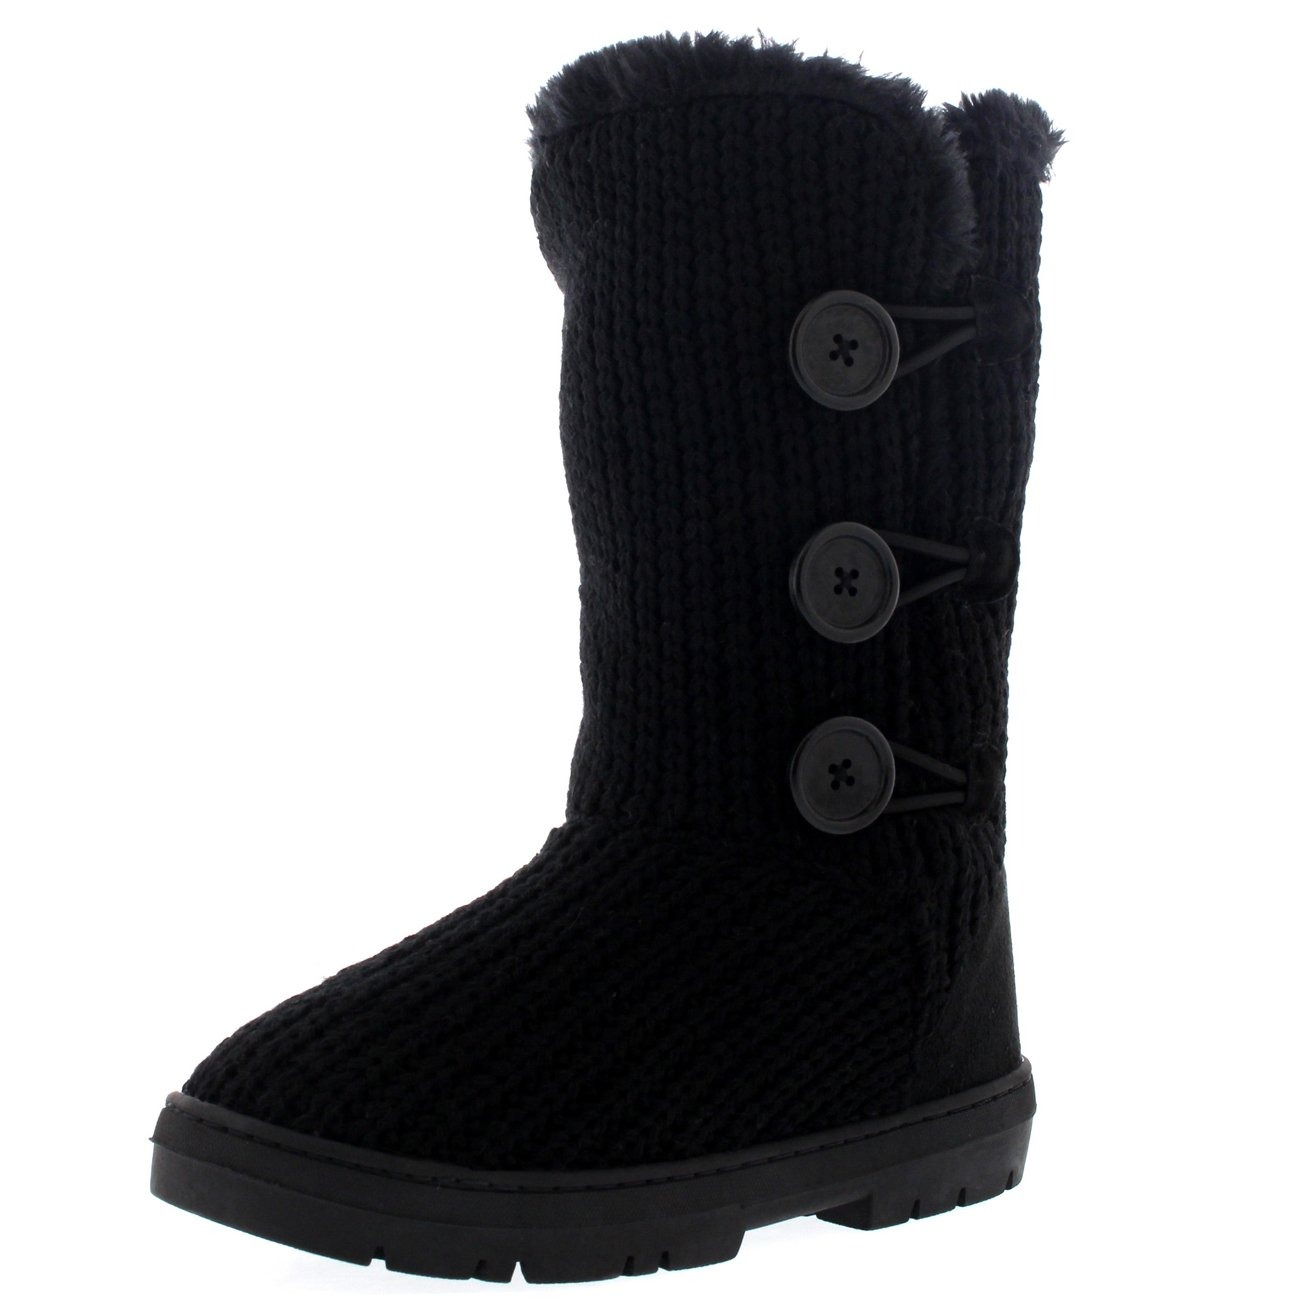 Holly Womens Triplet Button Waterproof Winter Snow Boots - 8 - BLK39 EA0288